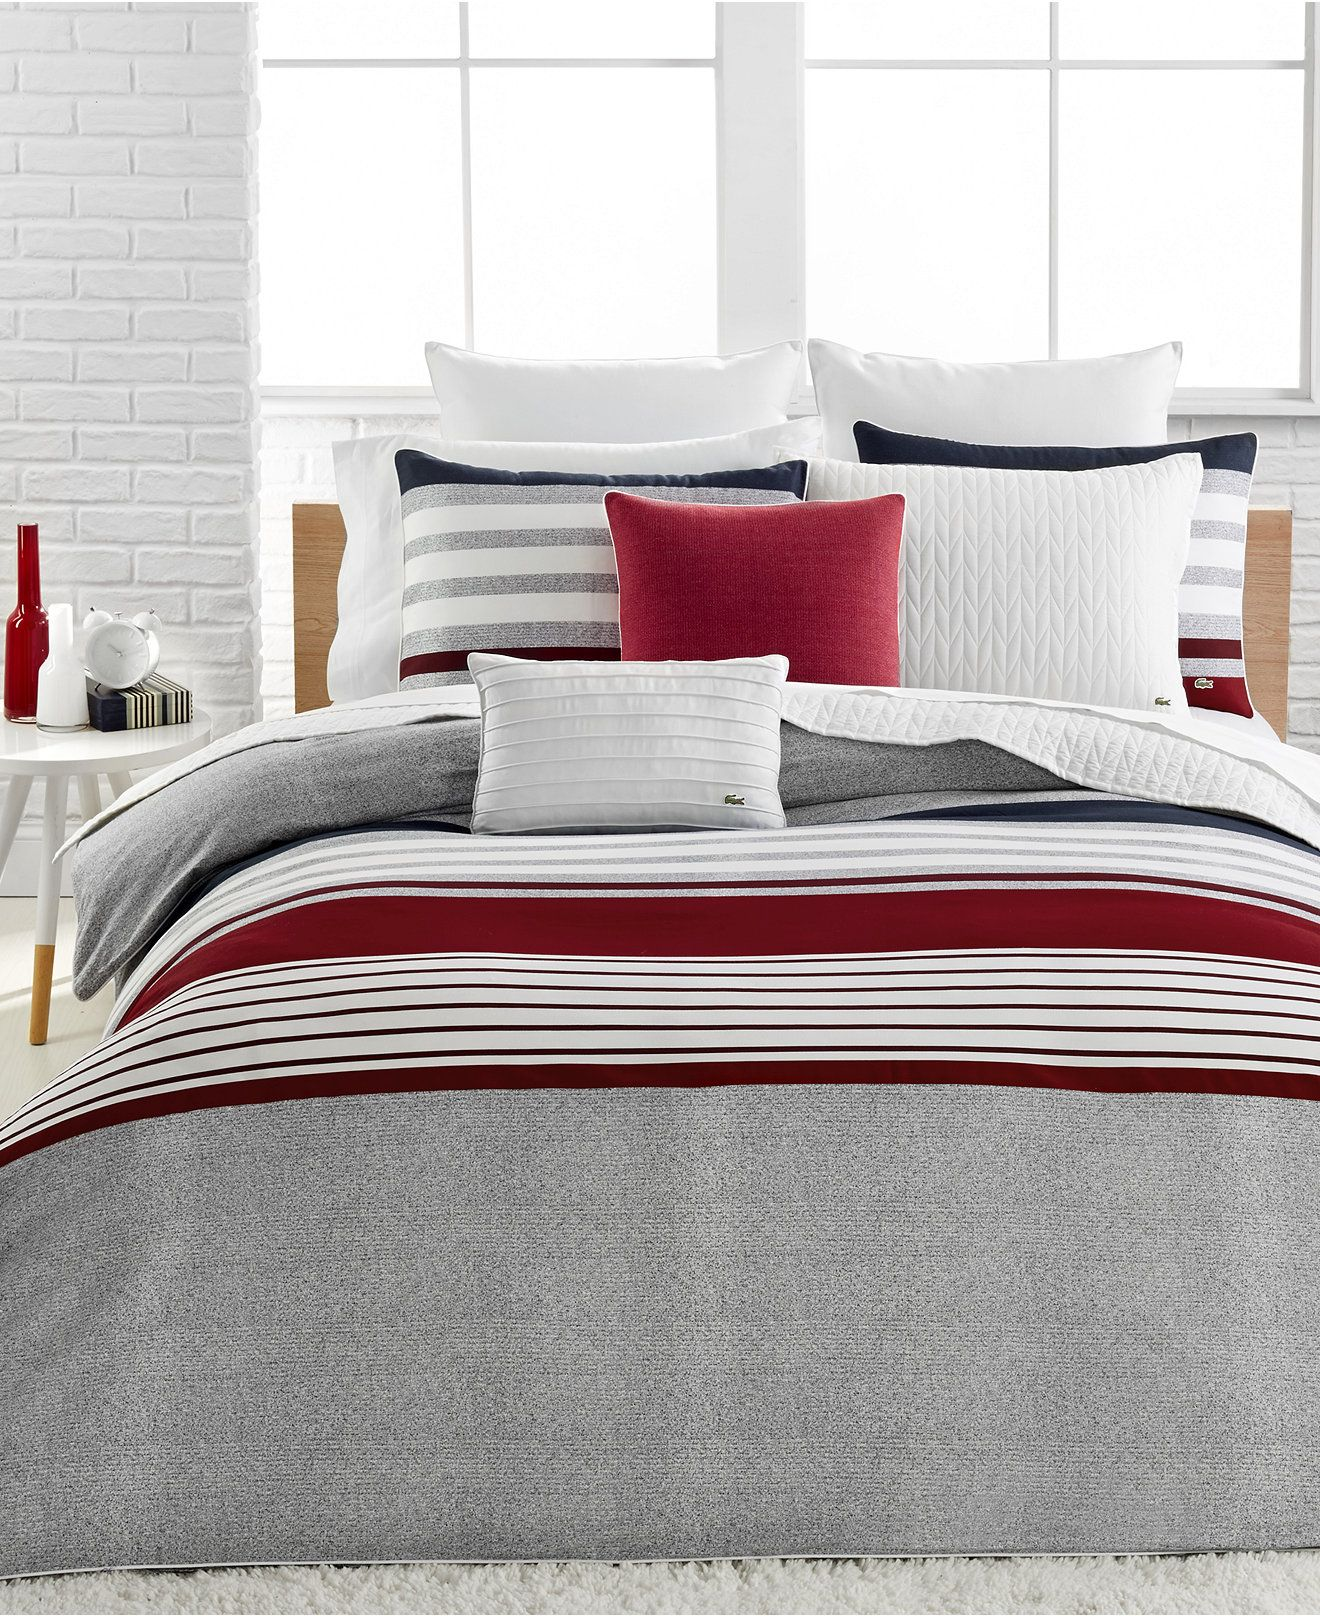 Lacoste Home Auckland Red Full/Queen Duvet Cover Set | Queen duvet ... : red and grey quilt - Adamdwight.com